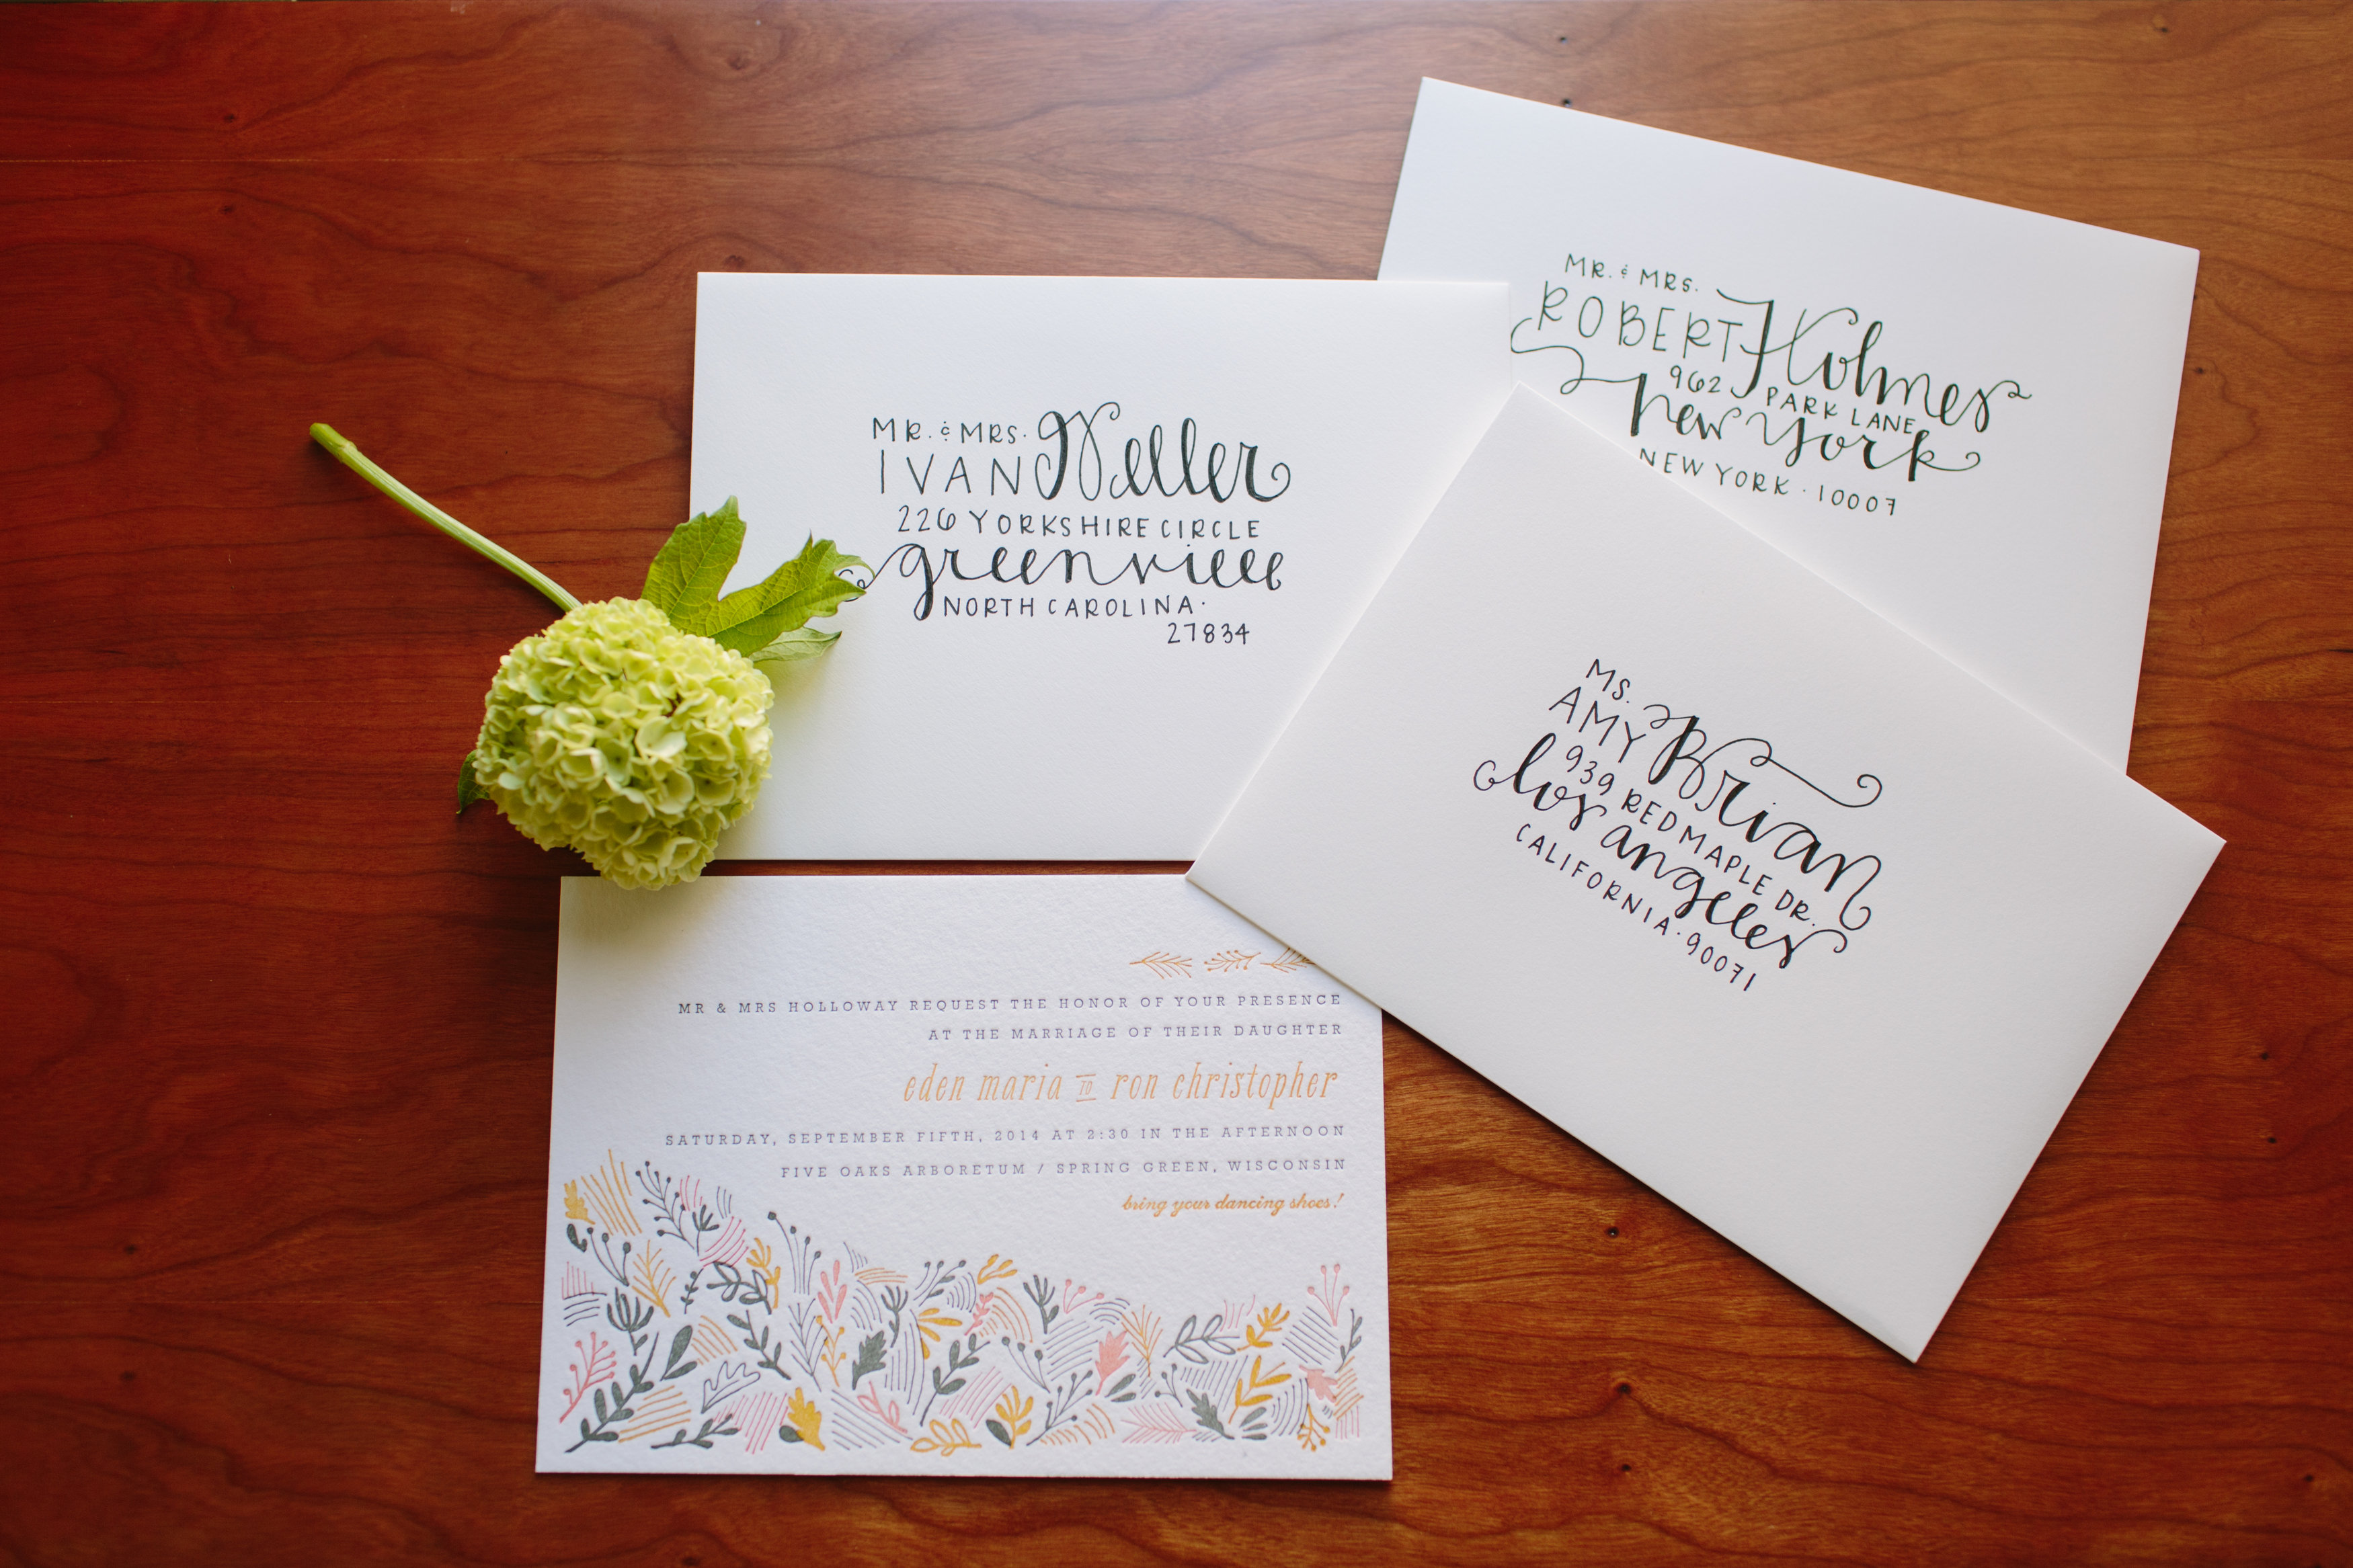 Diy wedding envelope addressing tips julep i solutioingenieria